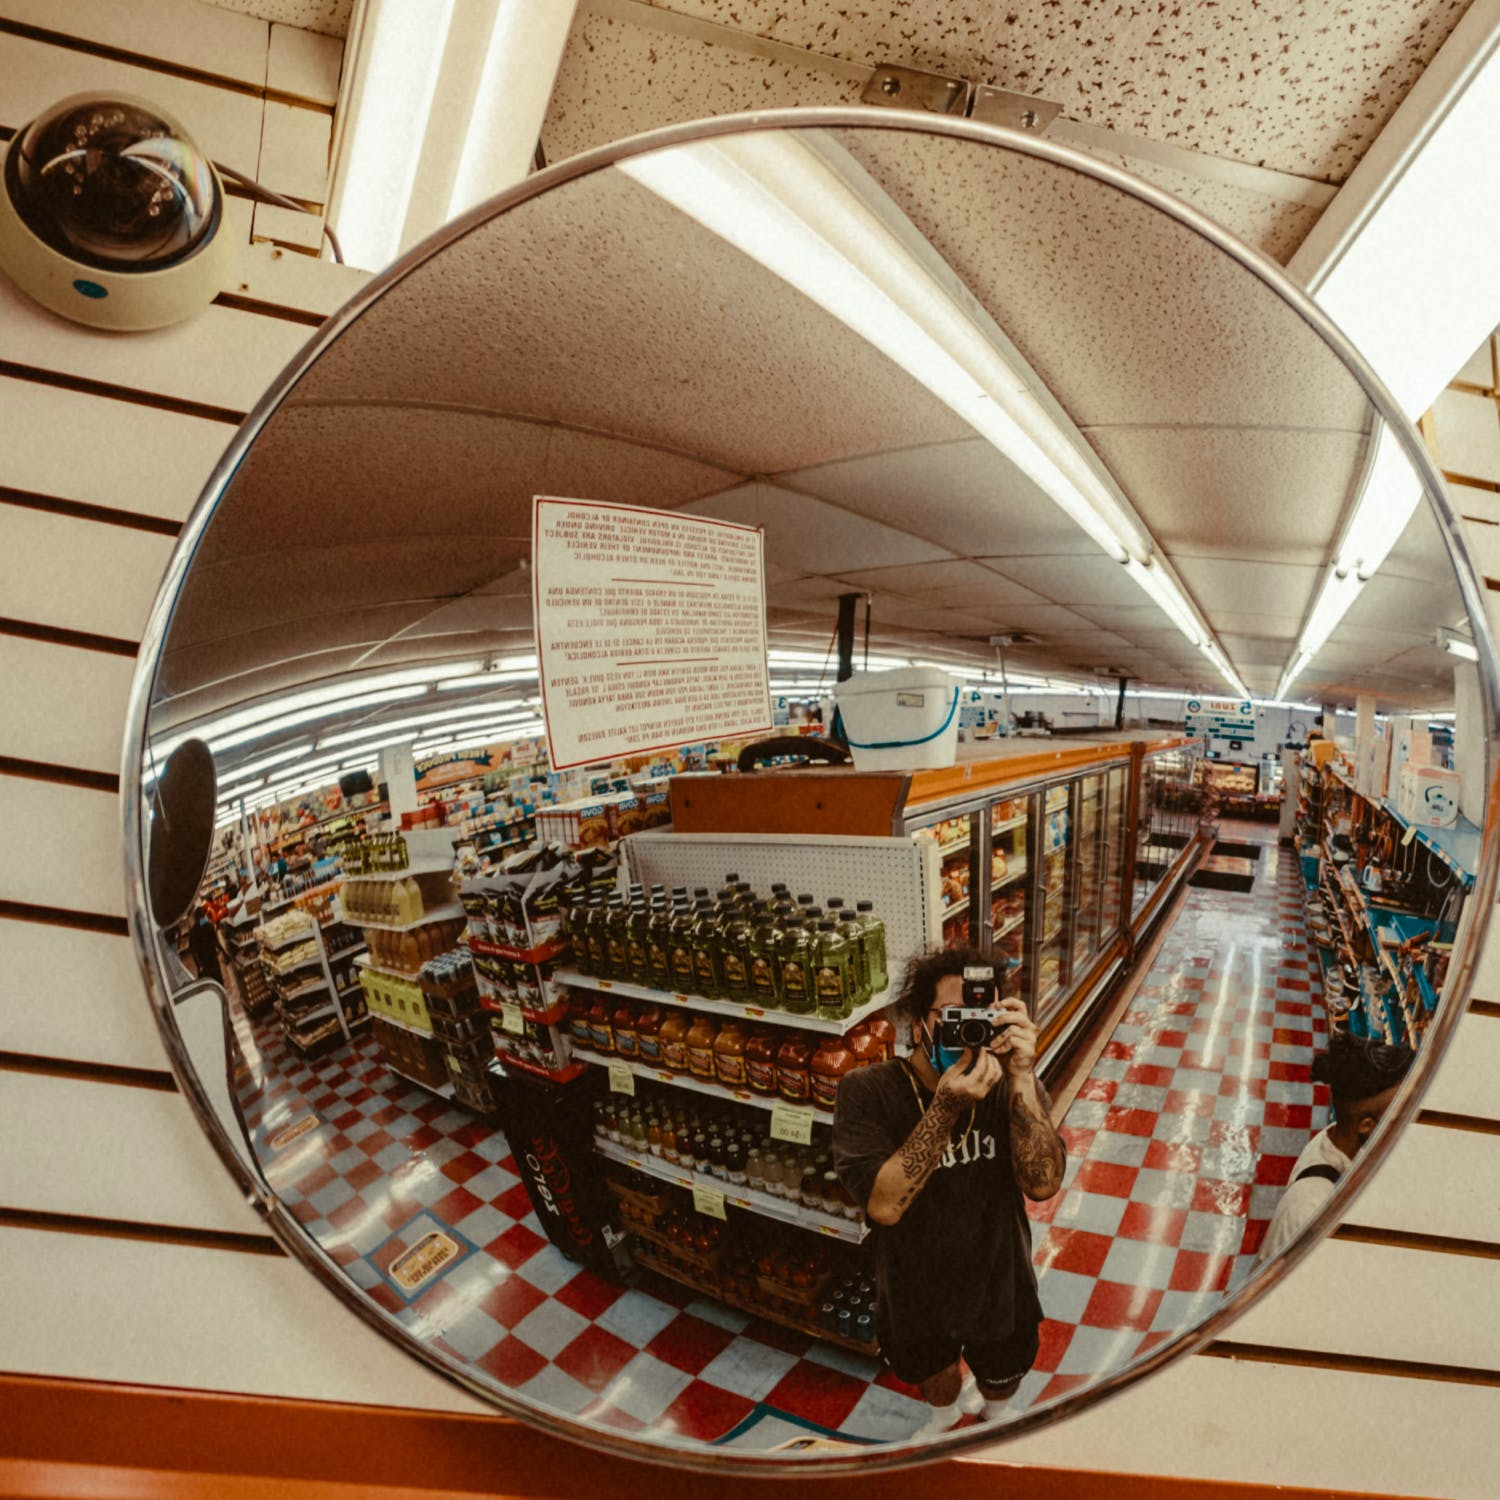 Security mirror in store